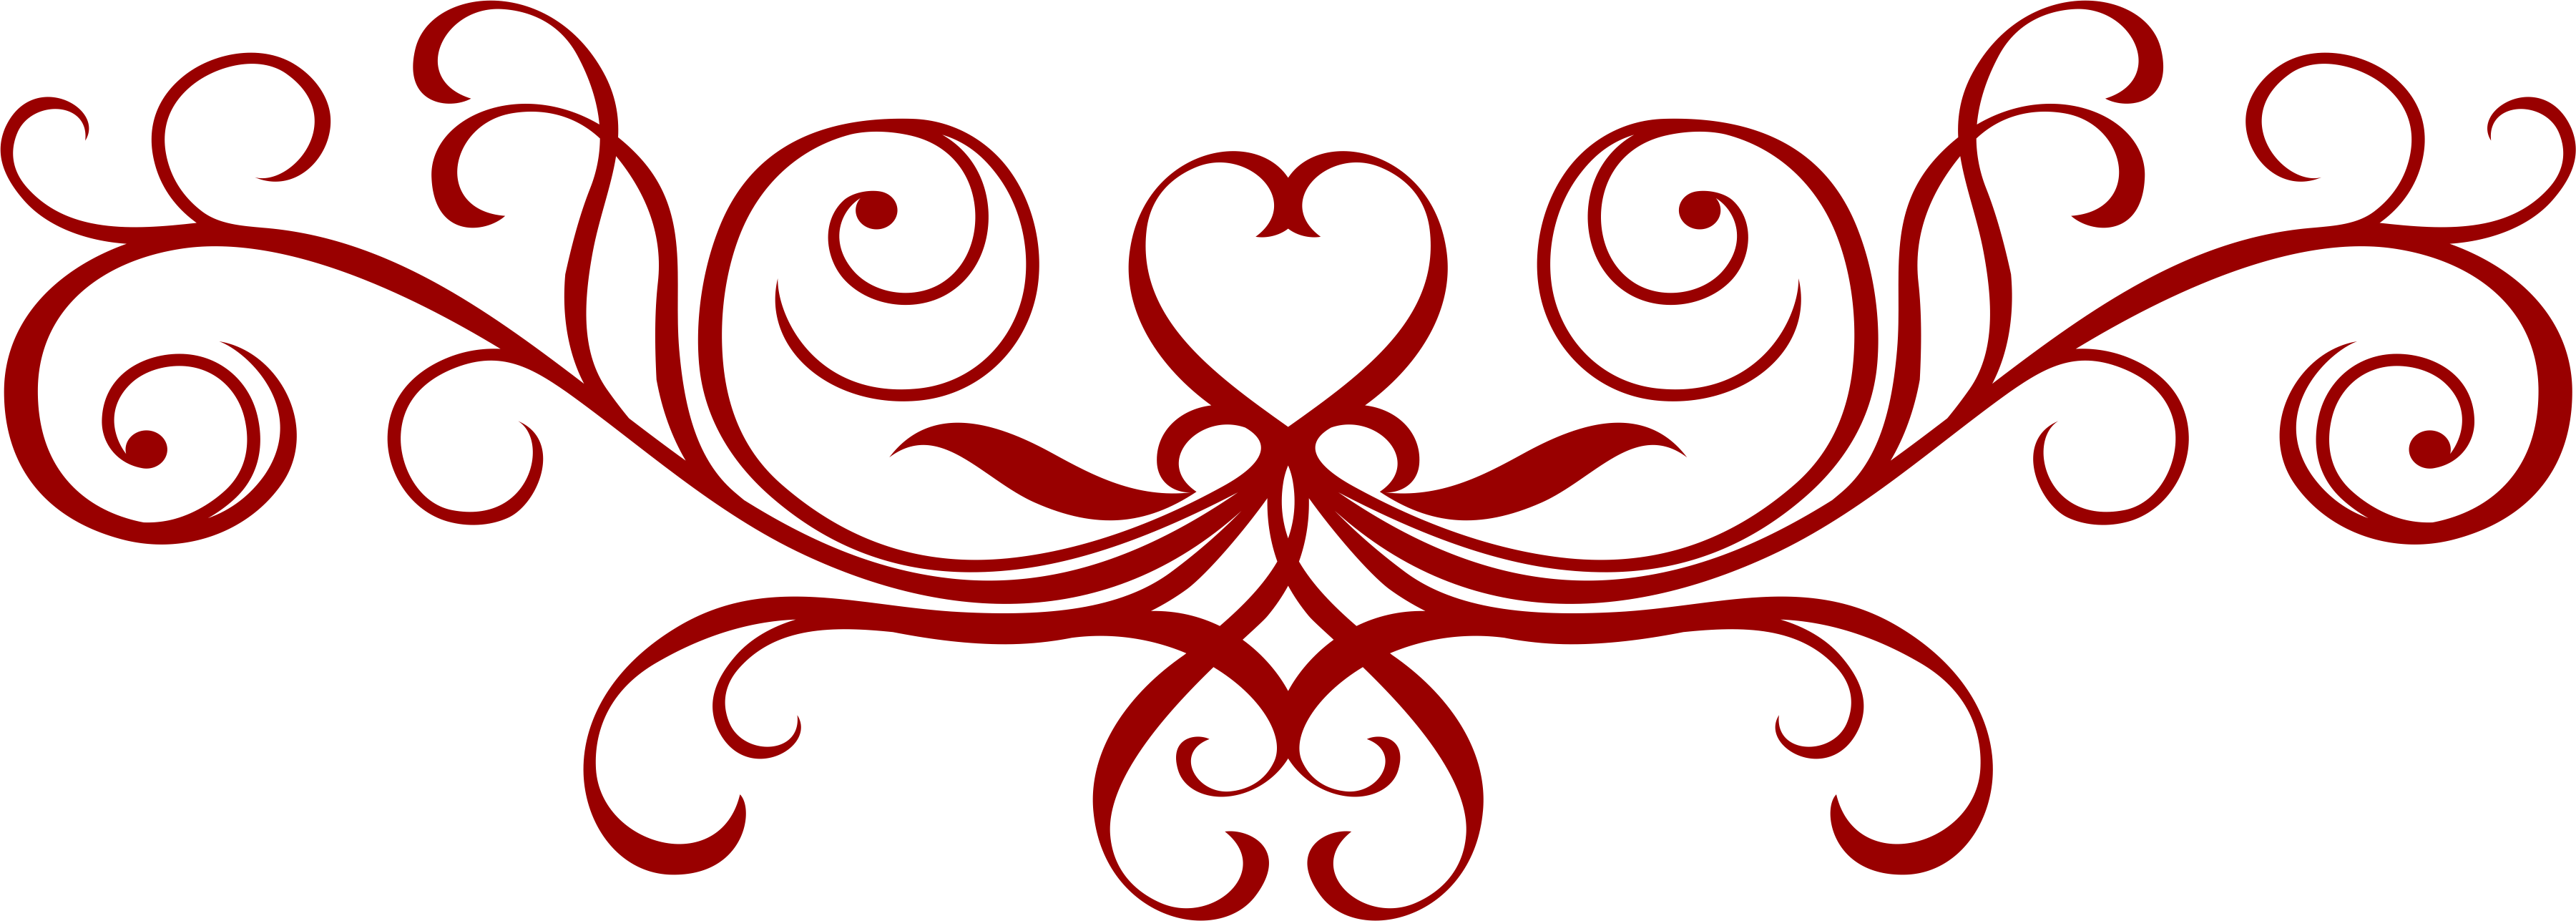 Red filigree images png. Free download clip art